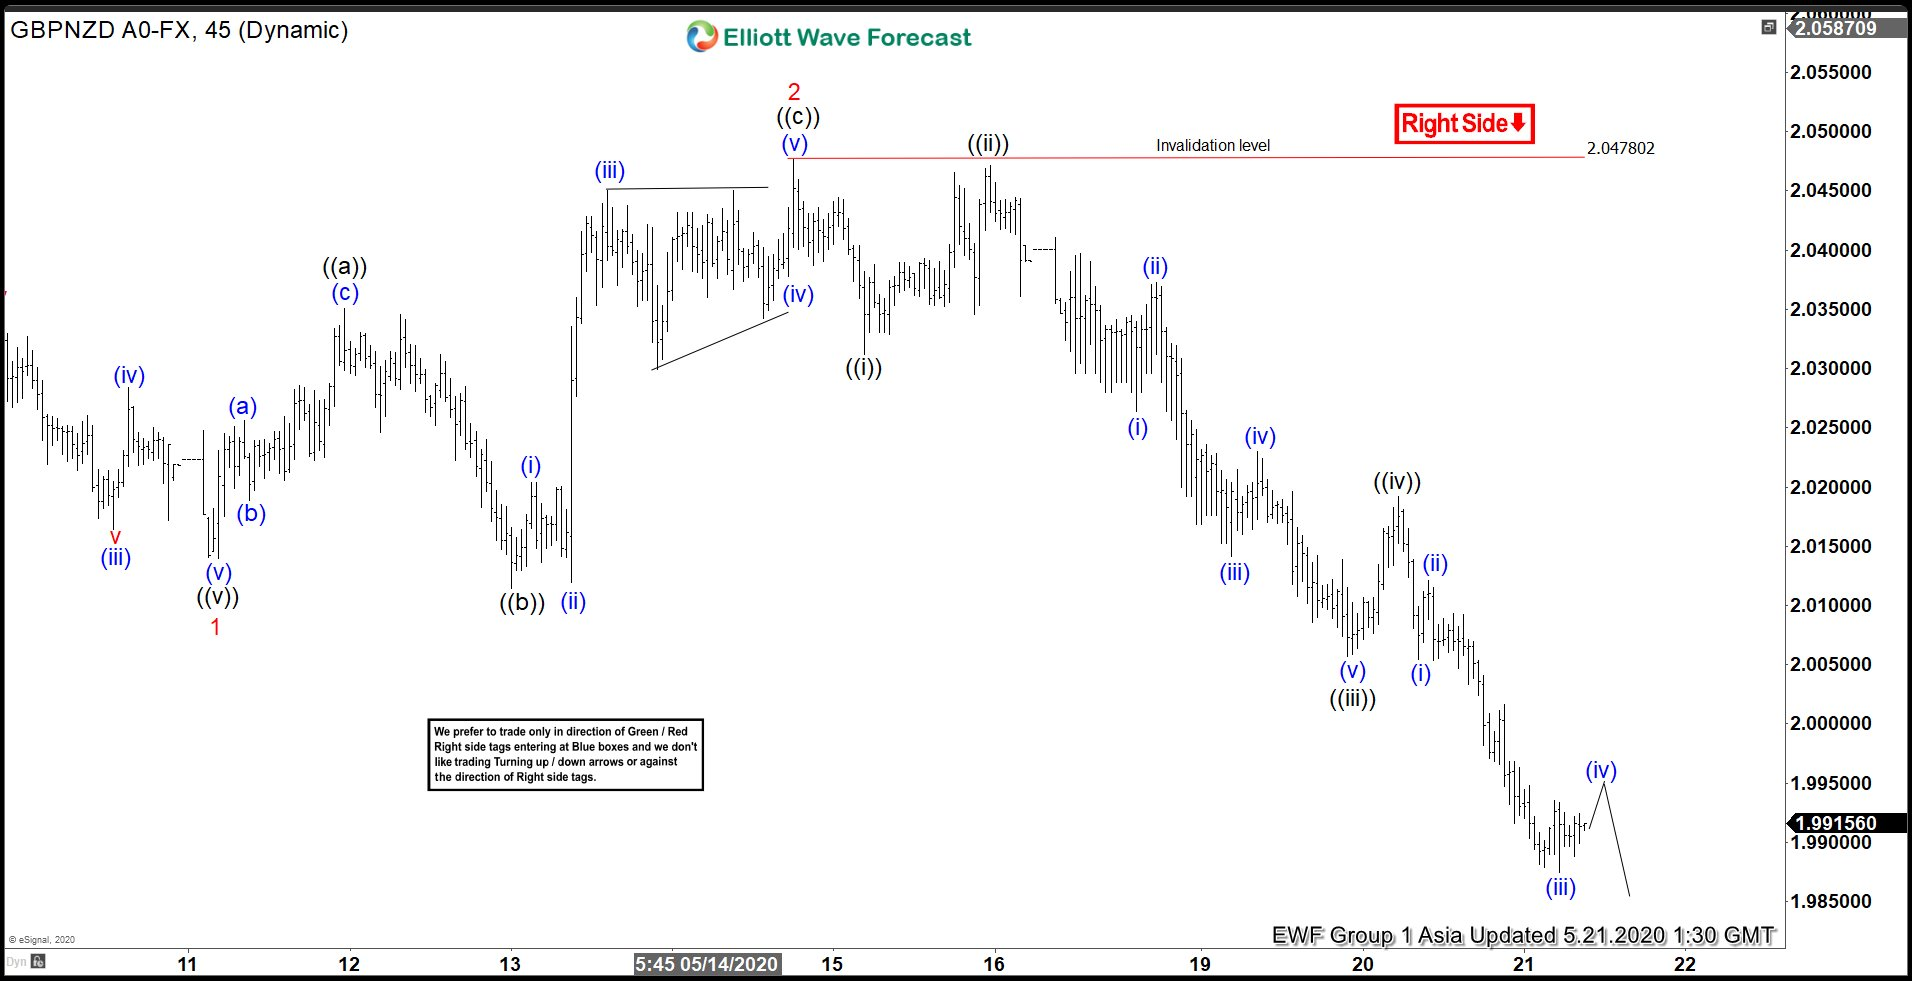 GBPNZD 1 Hour Elliott Wave chart